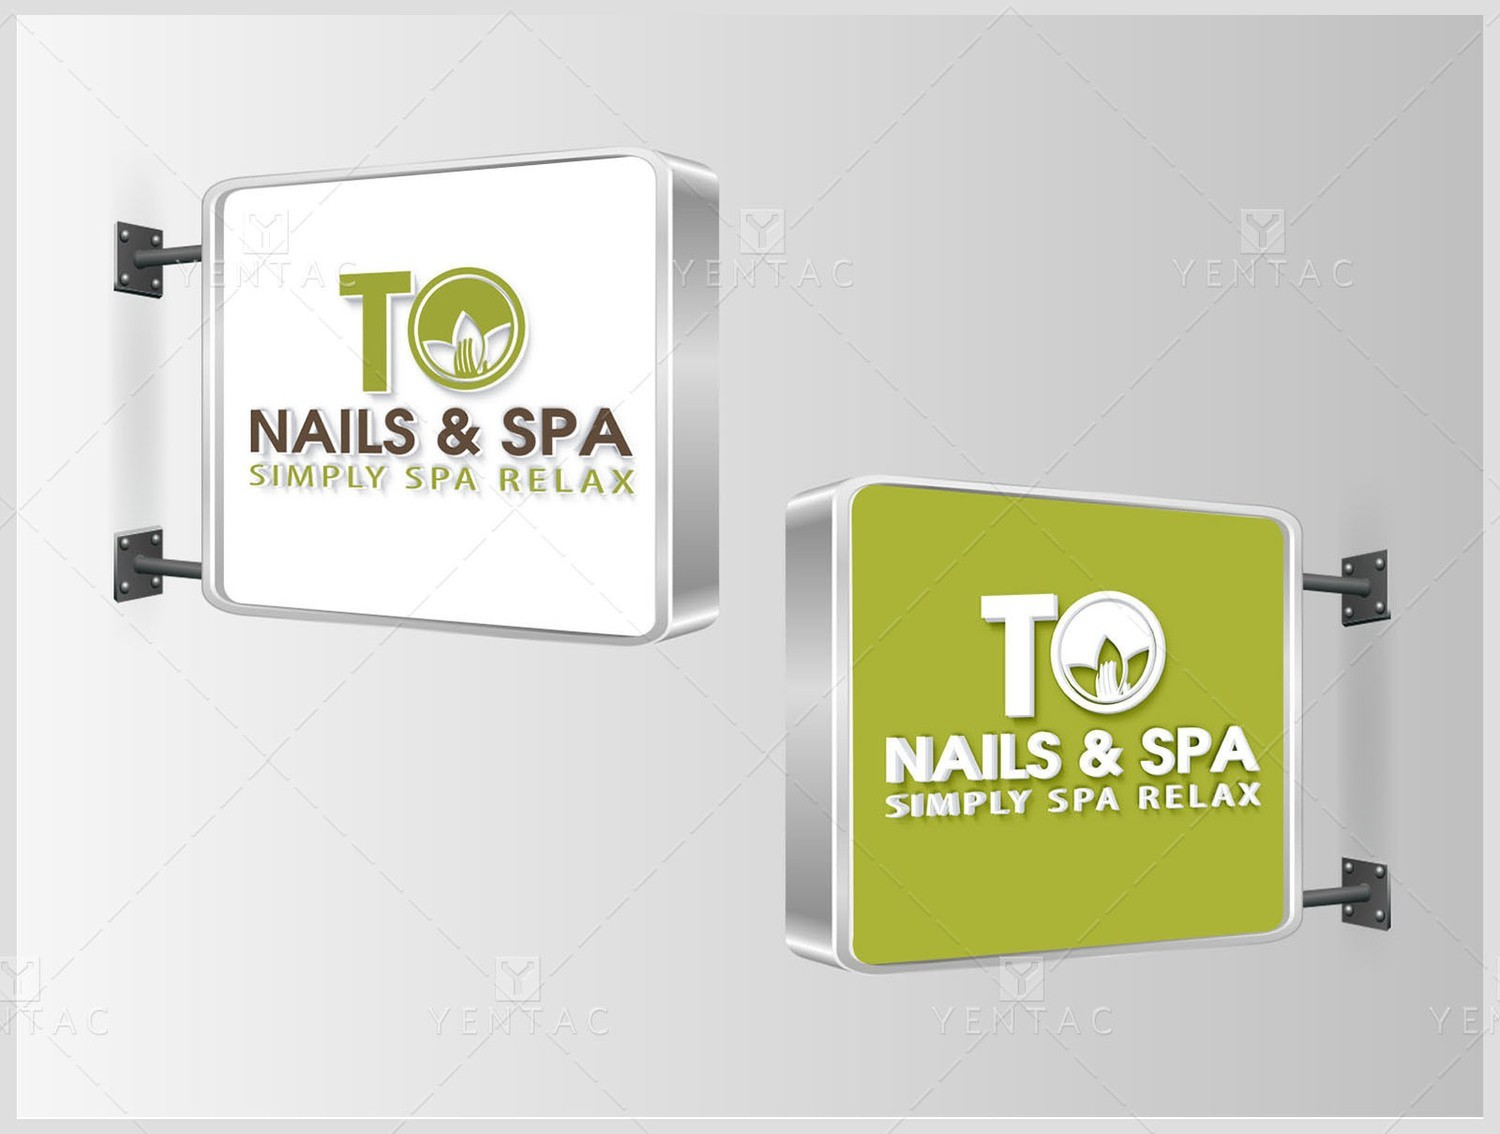 Signage Design & Installation TO Brand 3011